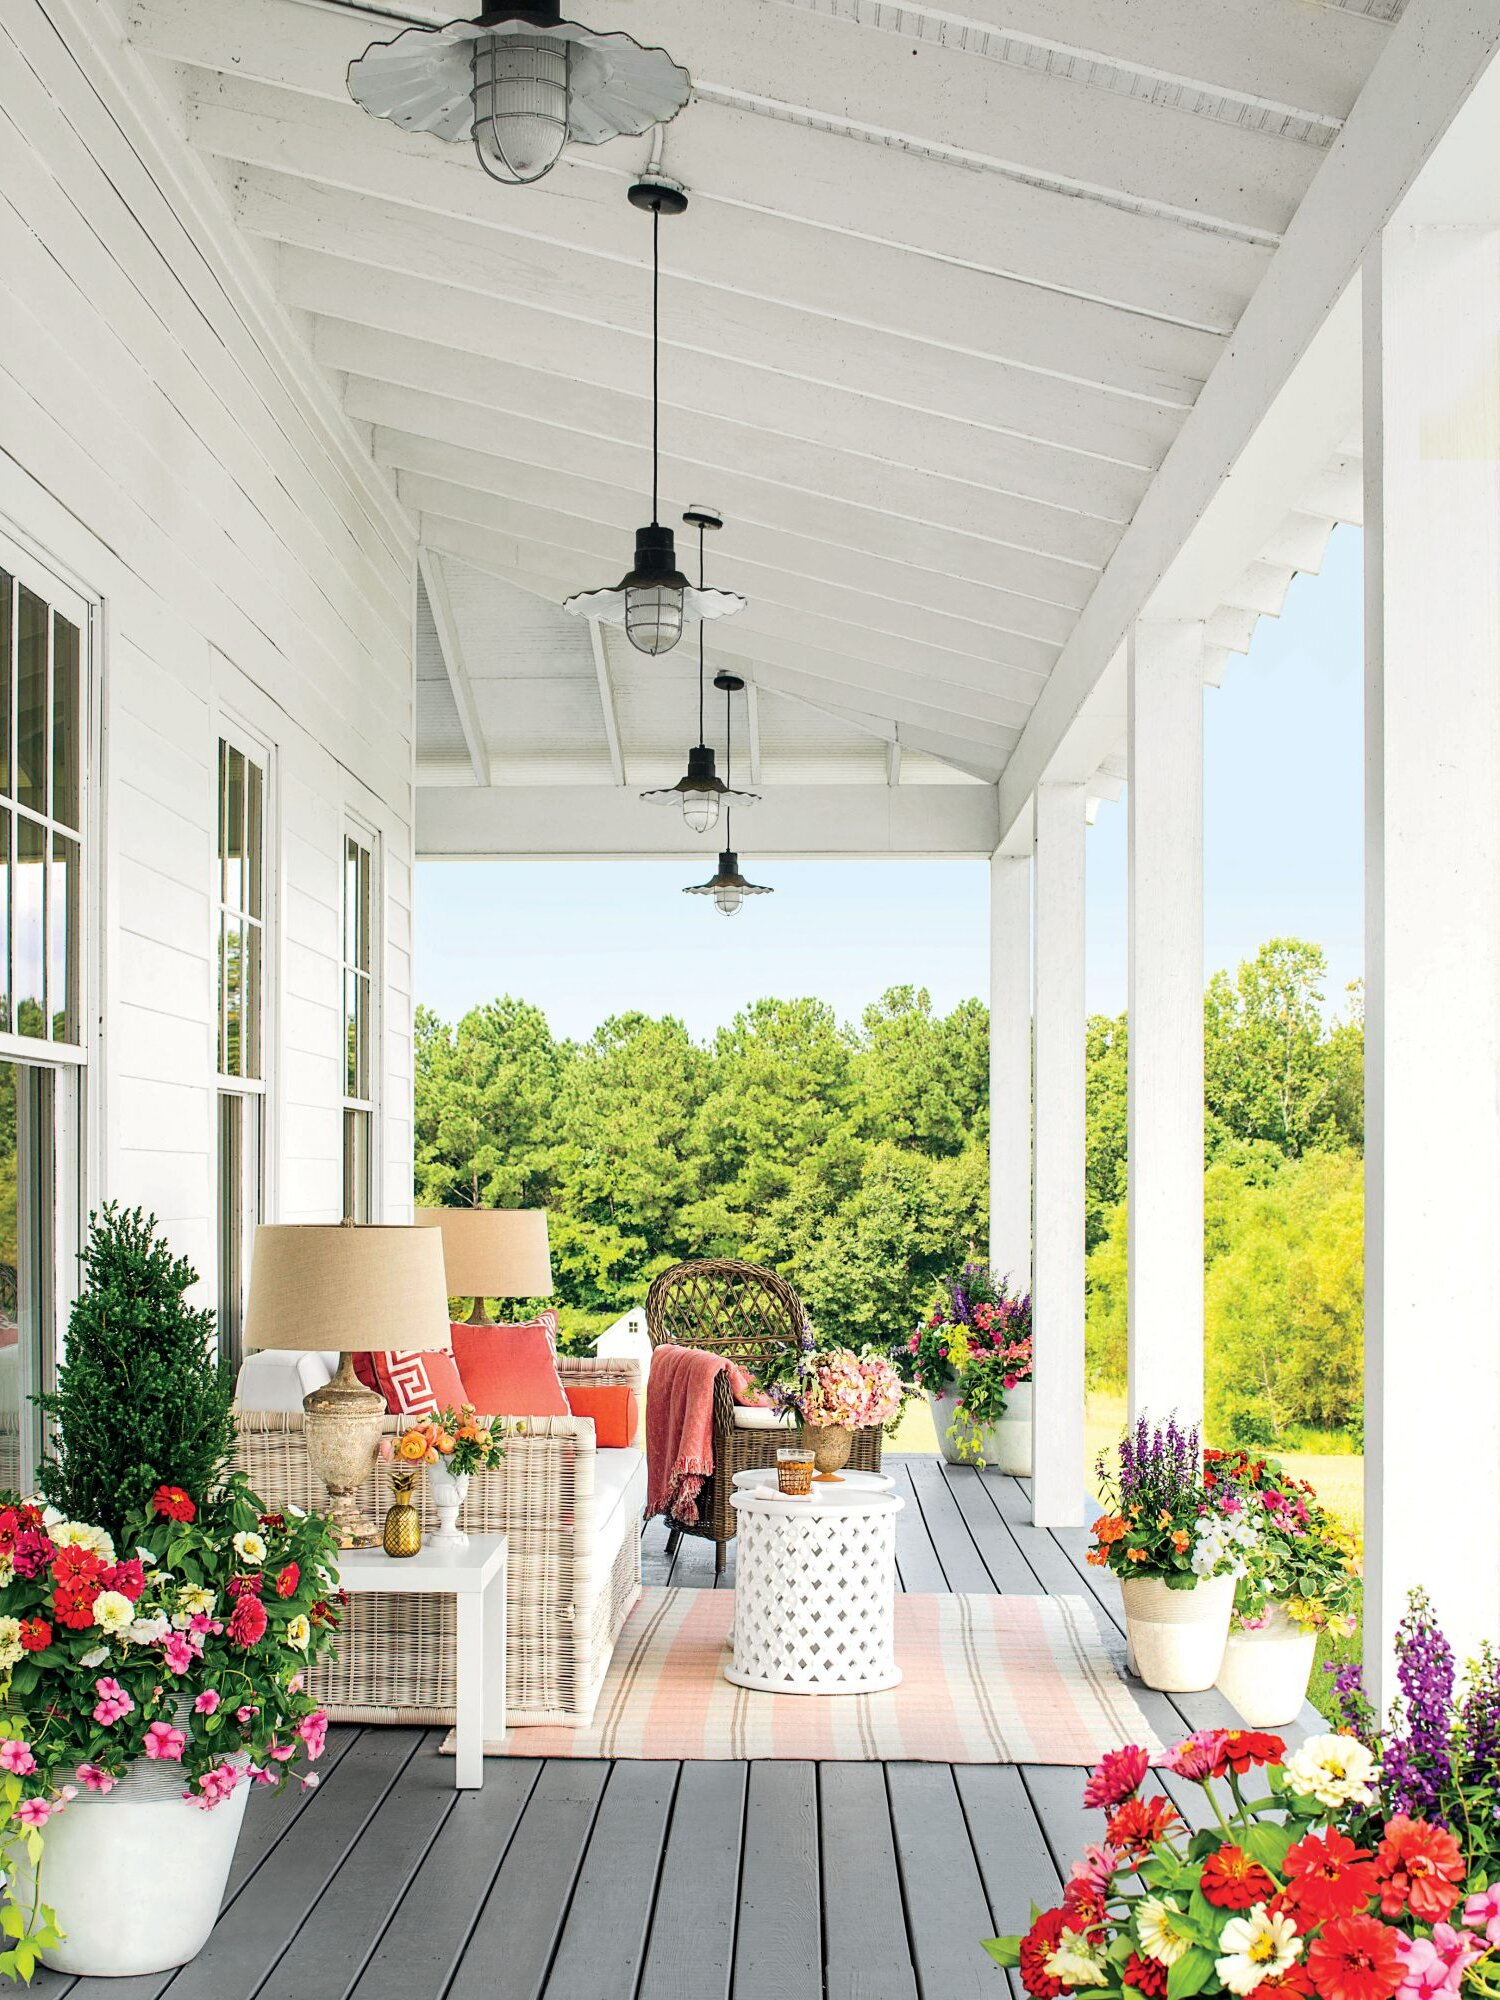 80 Porch And Patio Design Ideas You Ll